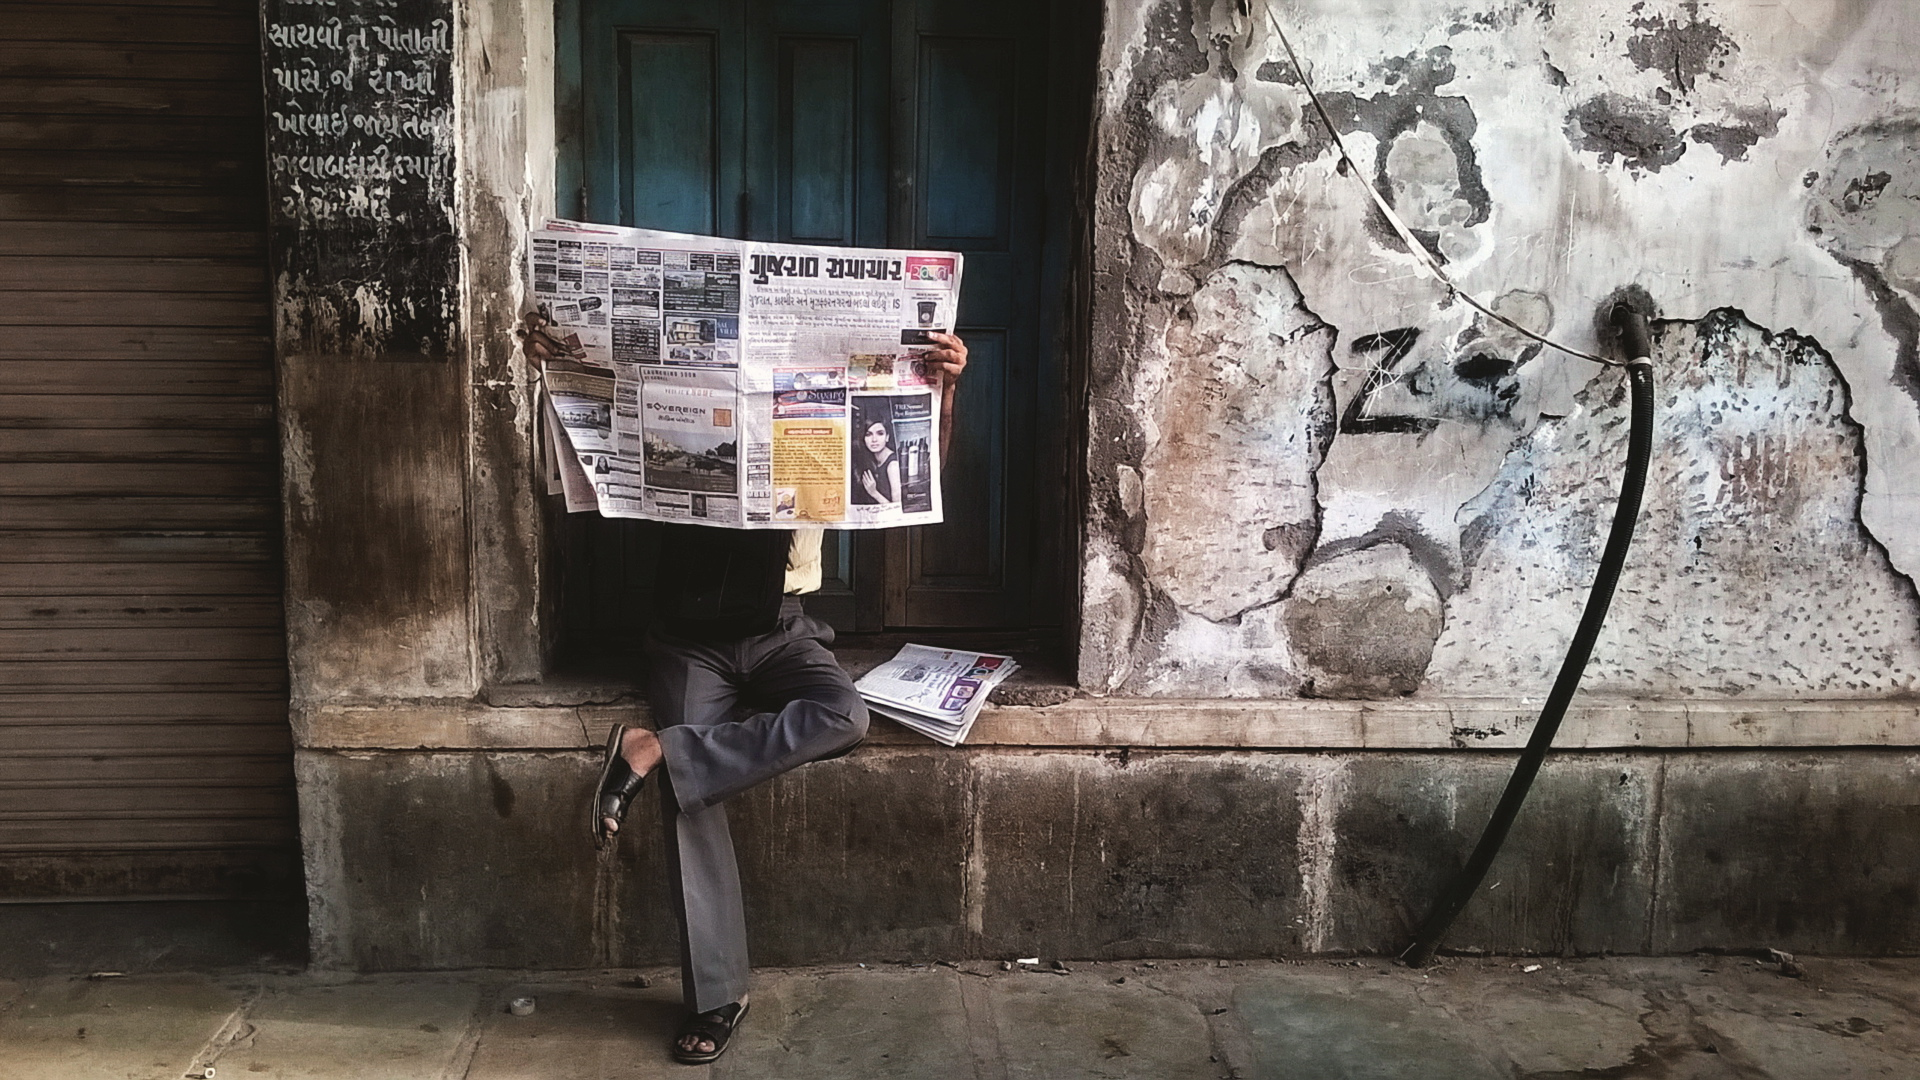 A Common man takes his time out to read news paper in between his time for work while leaving from Home.